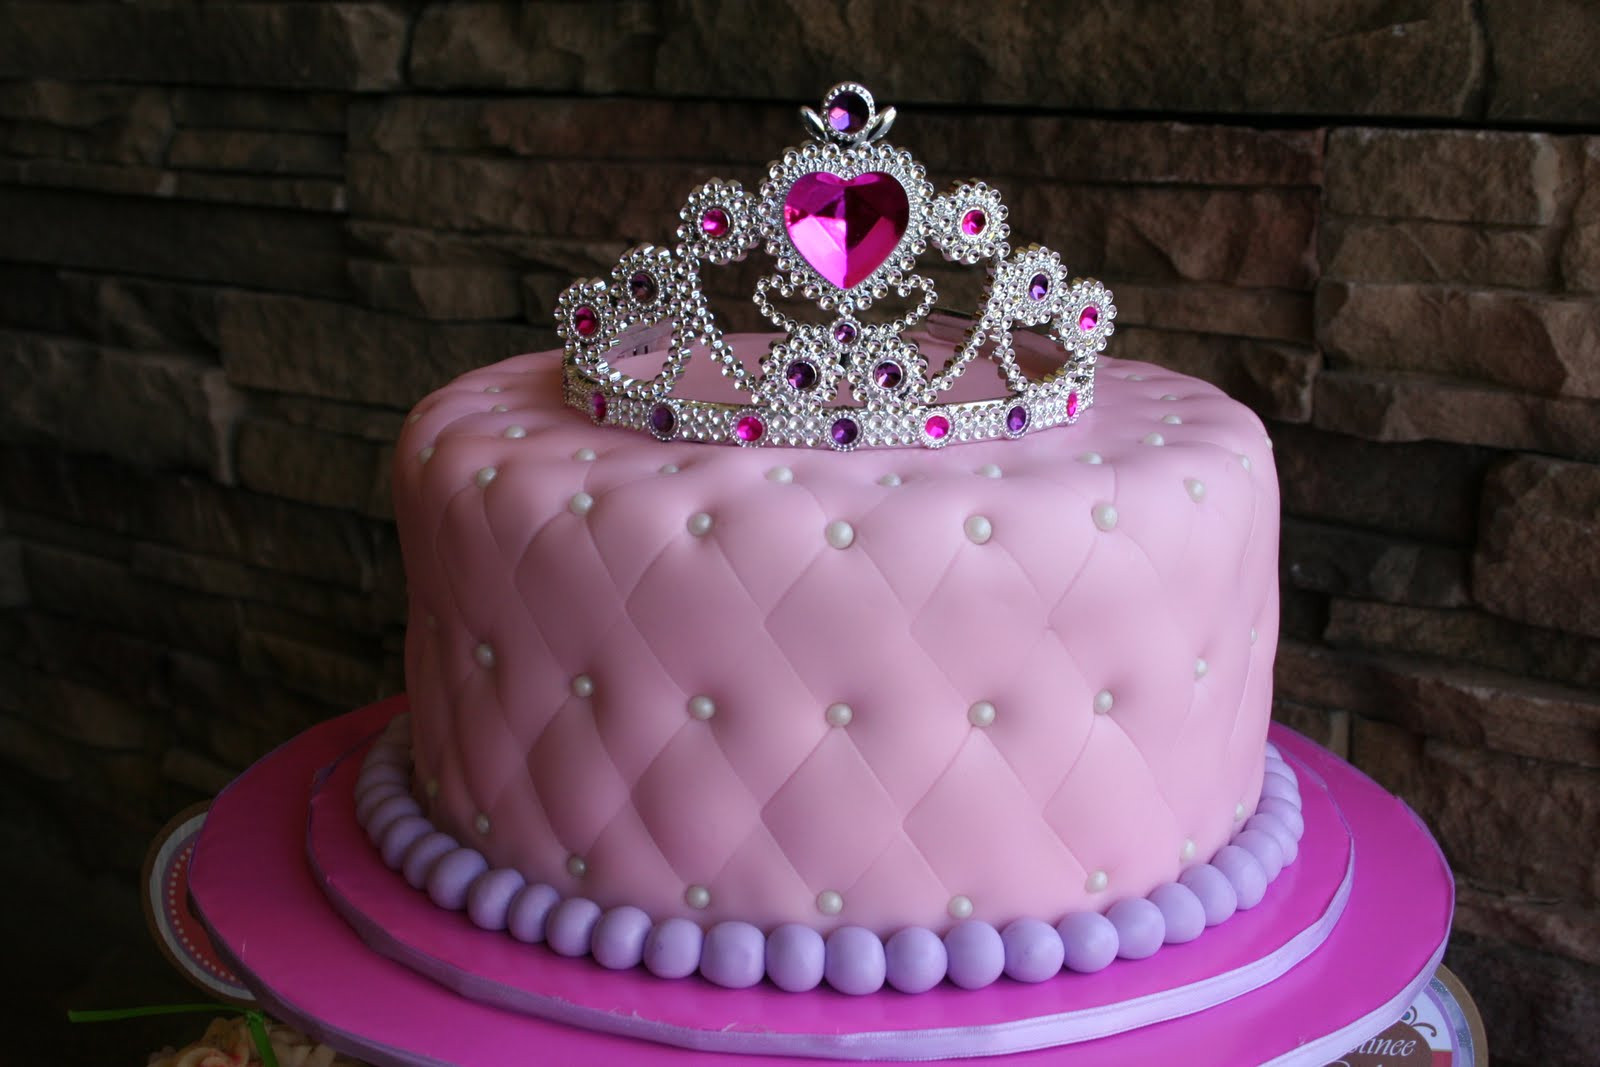 Best ideas about Princes Birthday Cake . Save or Pin cakes by narleen kristel a princess 1st birthday Now.